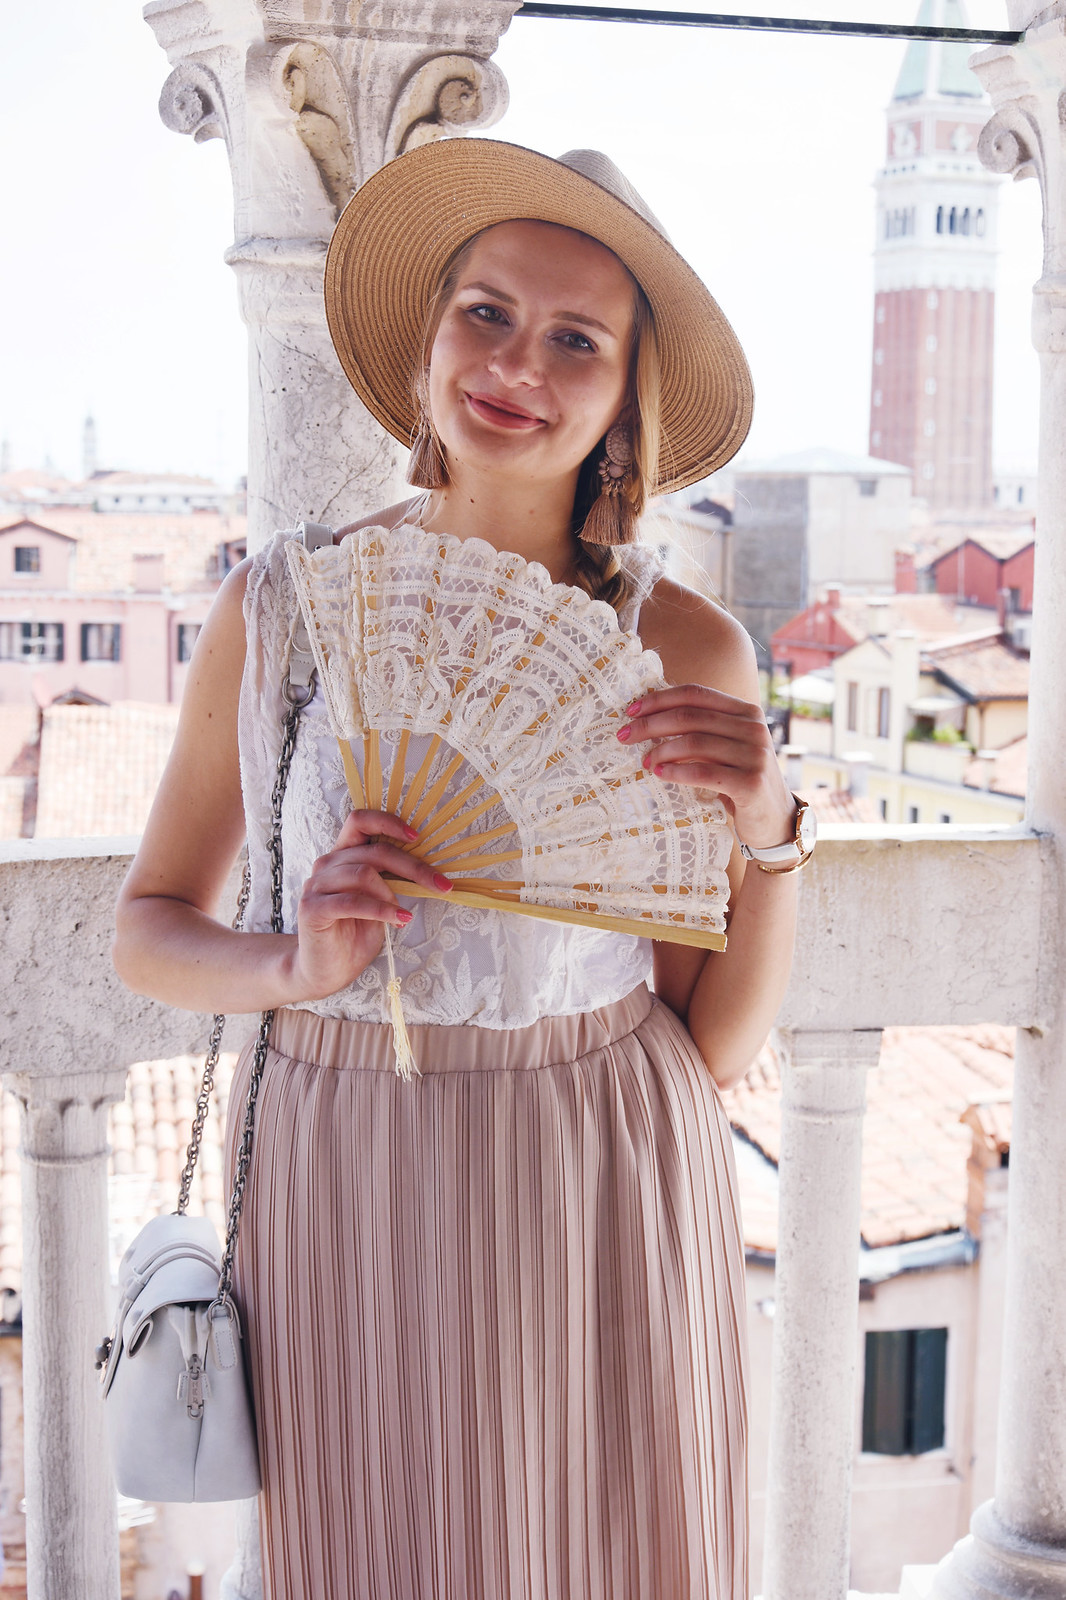 Venice vacation outfit